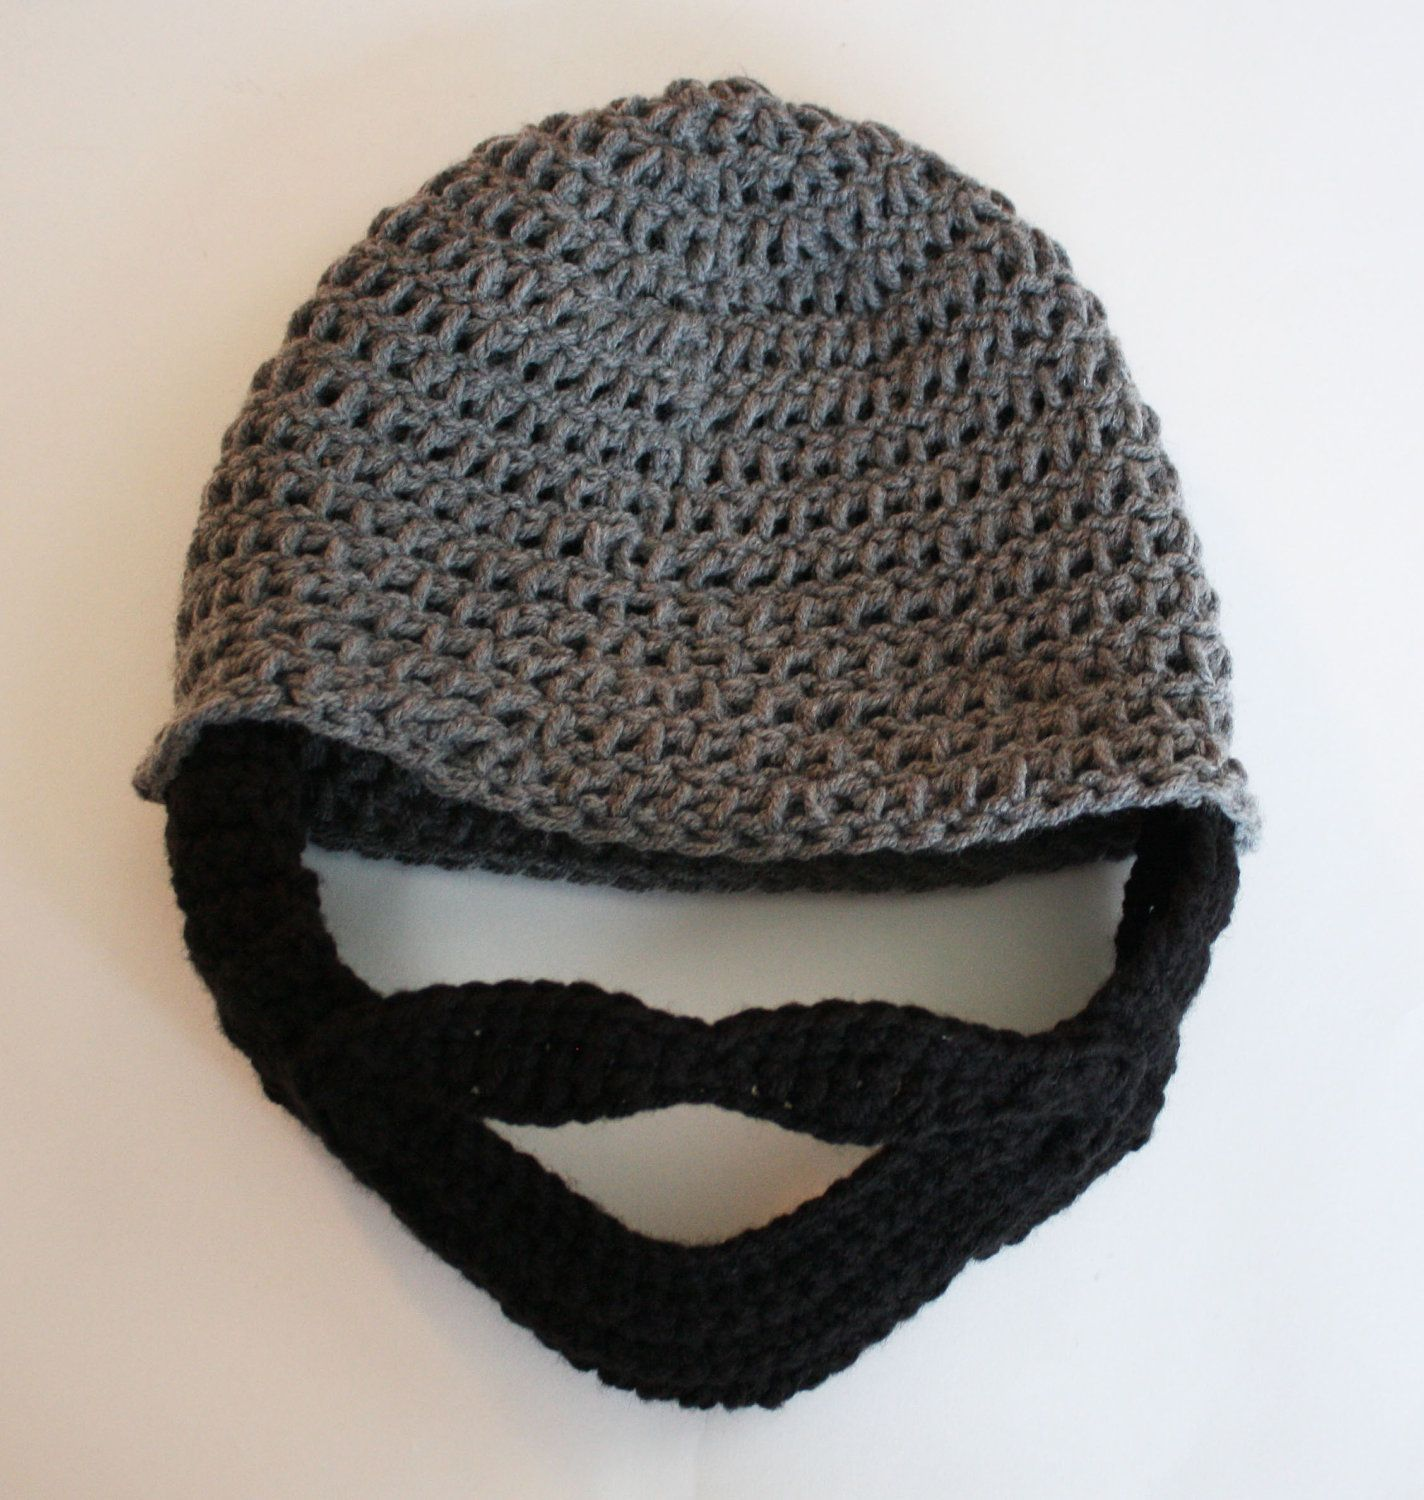 Crochet Beard Hat with Mustache #crochetedbeards